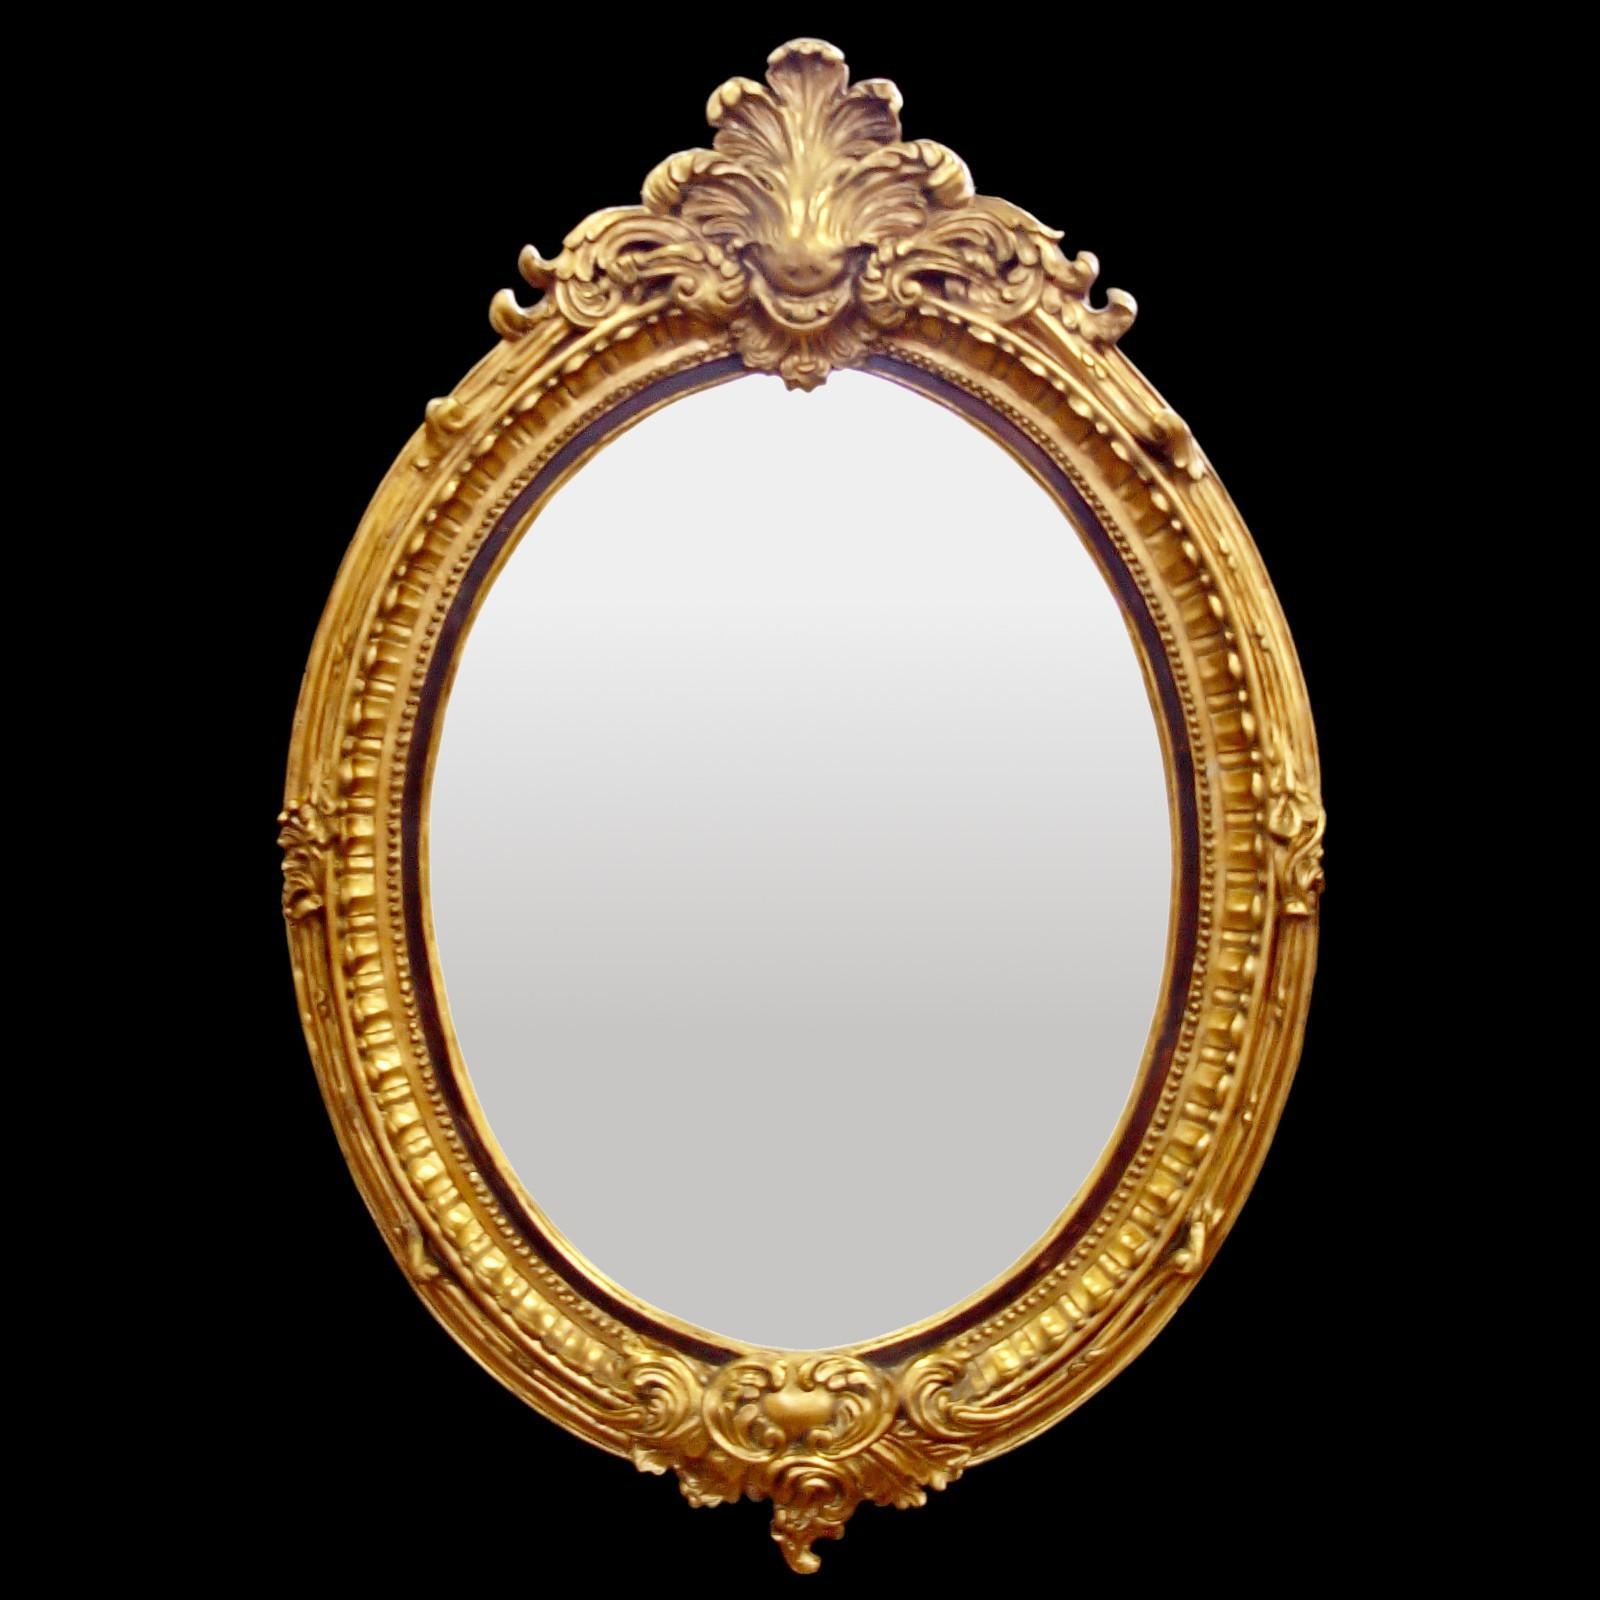 Baroque Hall Mirror Oval Wall Mirror Gold Color Red Leaf Motif Throughout Gold Baroque Mirror (Image 7 of 20)